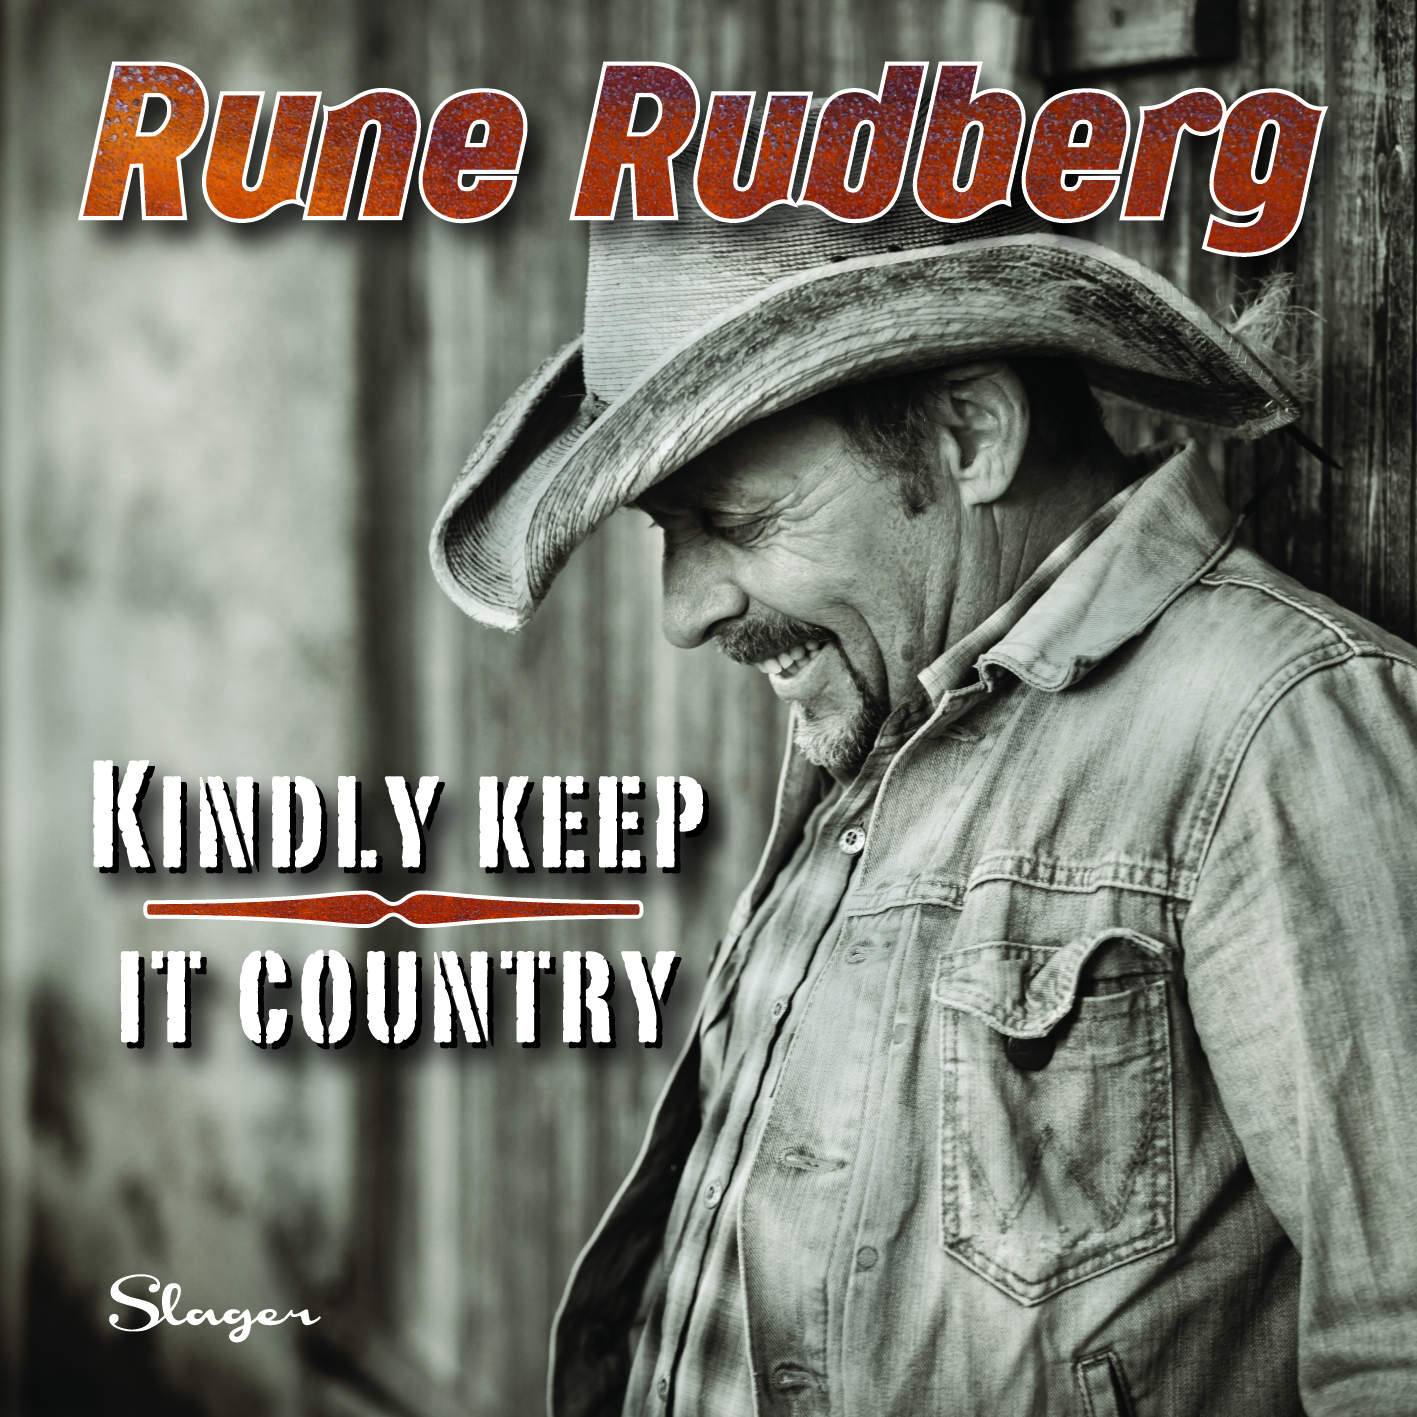 Kindly keep it country